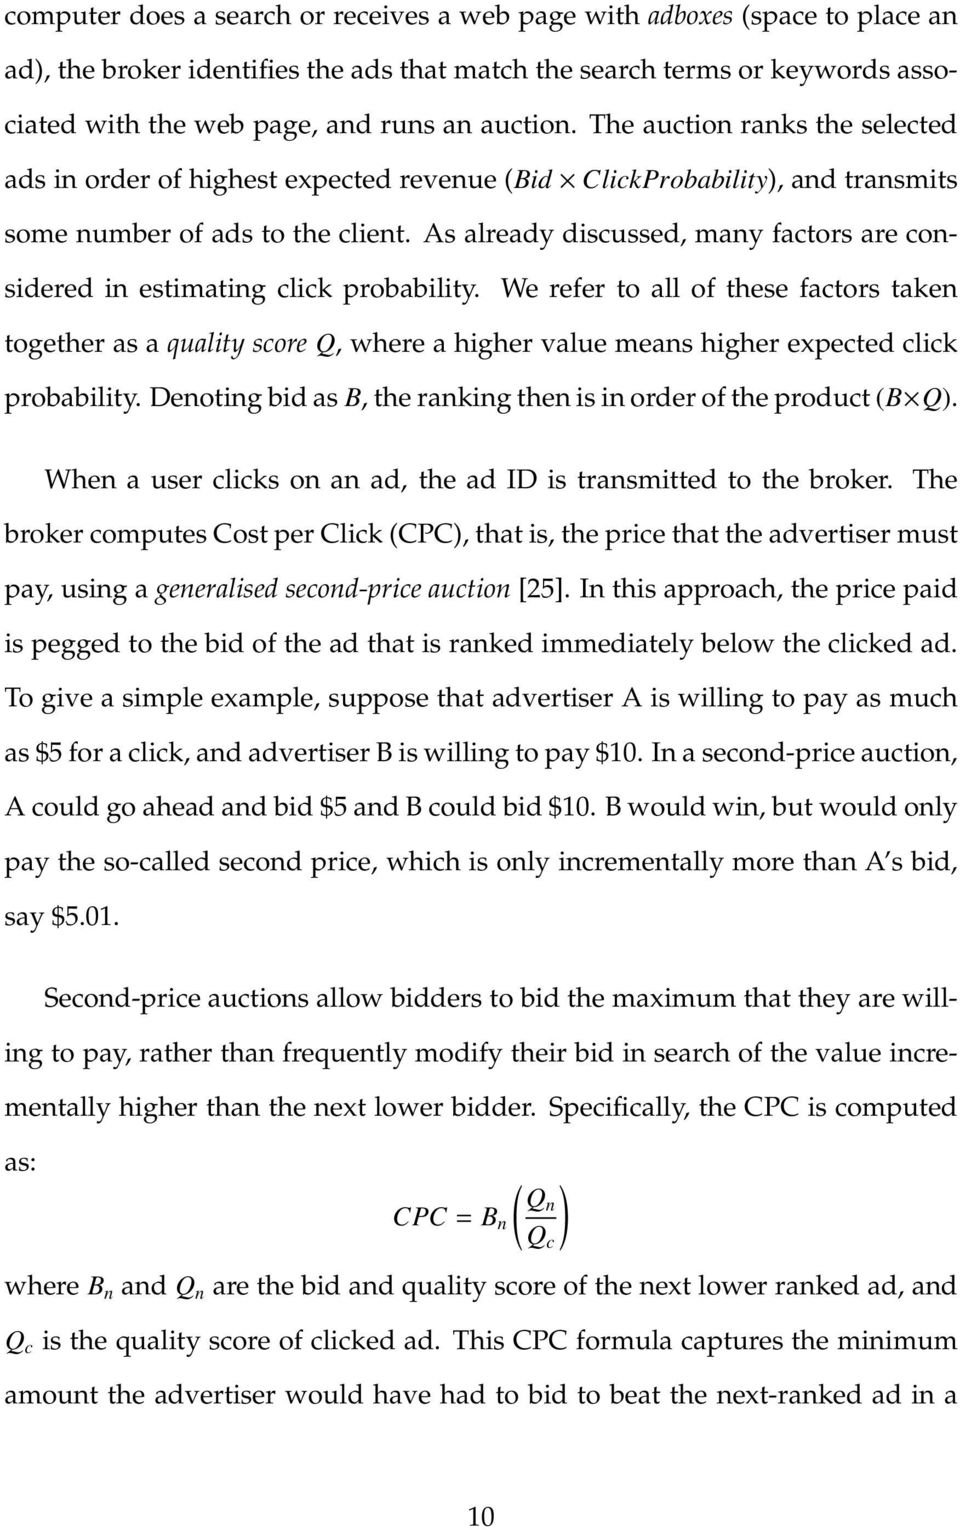 As already discussed, many factors are considered in estimating click probability.